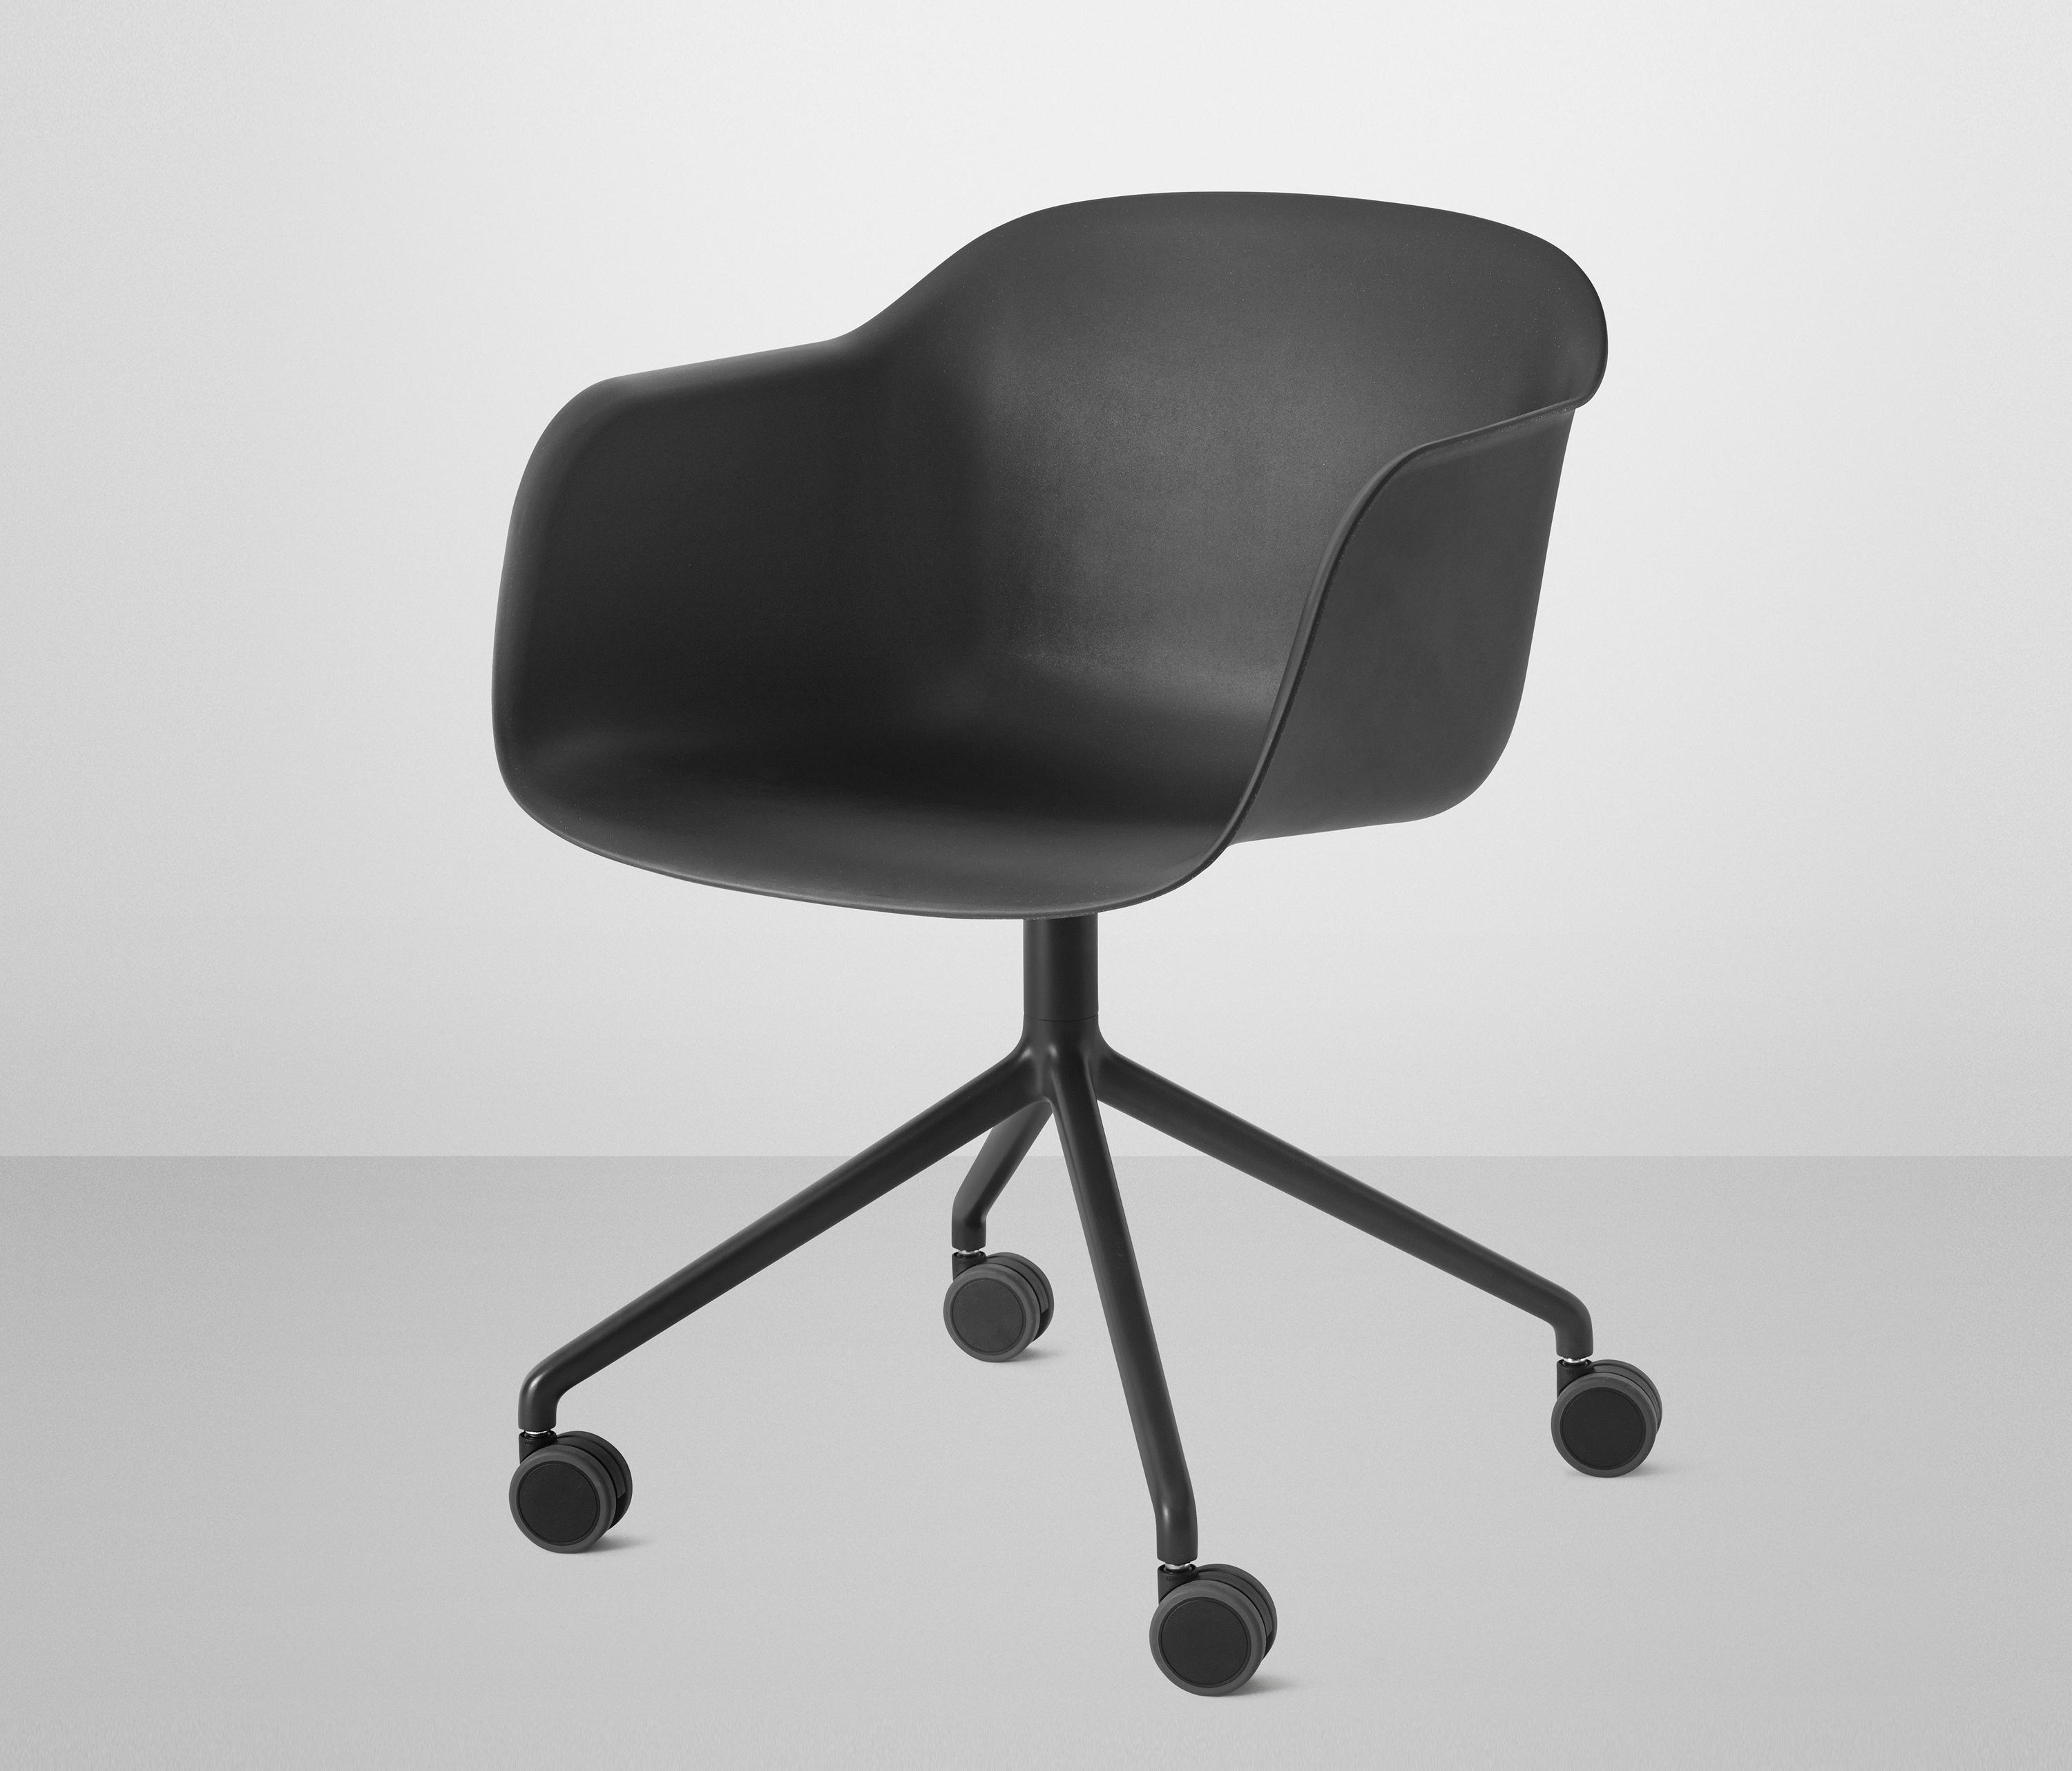 fiber armchair swivel base with wheels chairs from. Black Bedroom Furniture Sets. Home Design Ideas